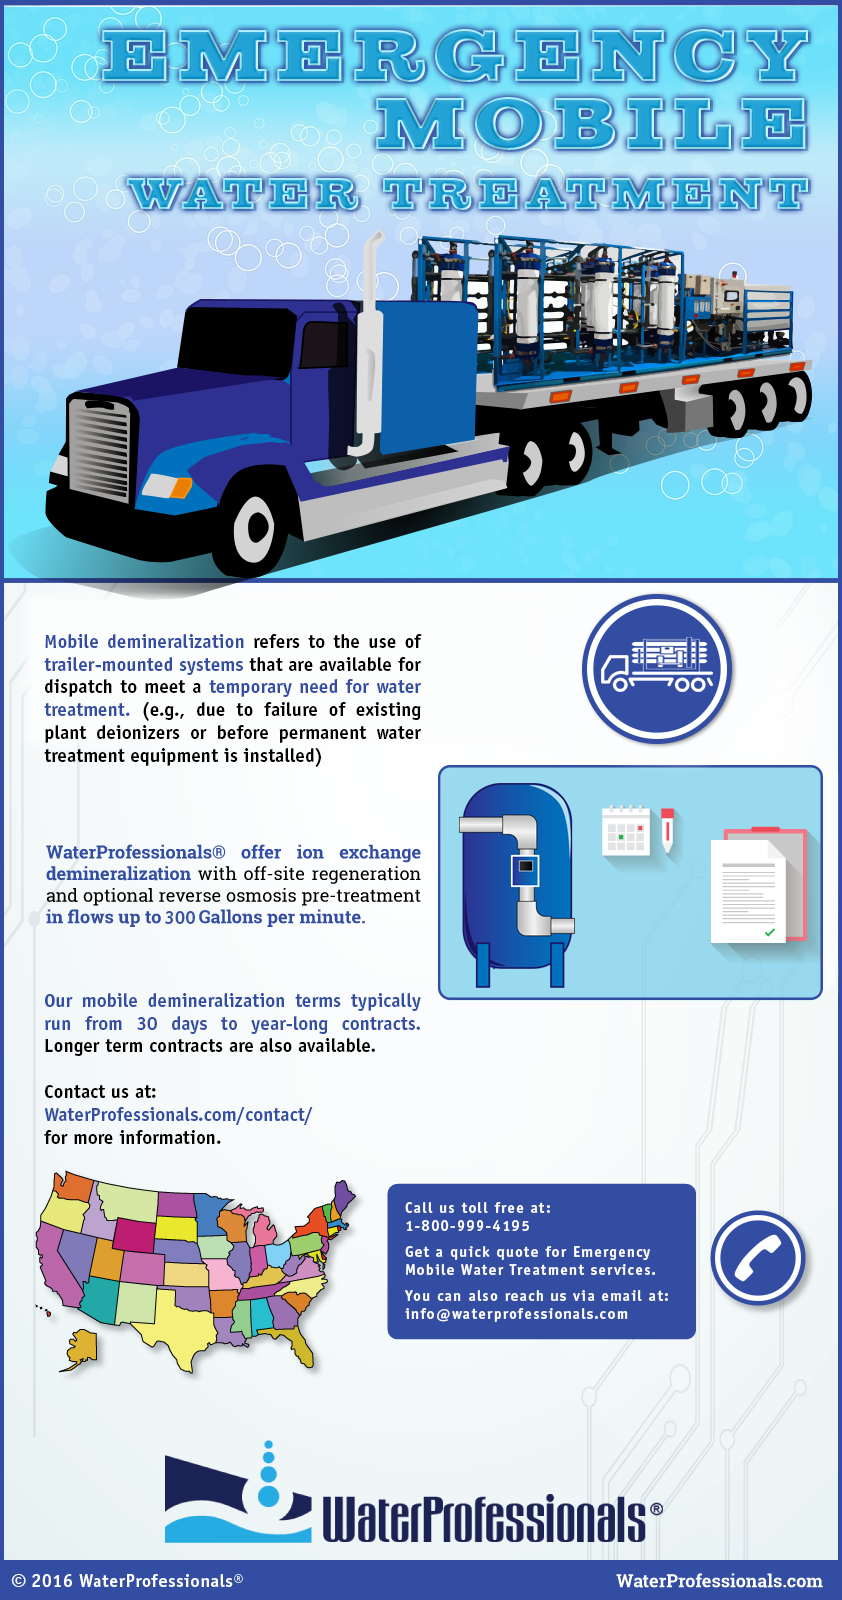 Mobili Due G Mobile Demineralization Refers To The Use Of Trailer Mounted